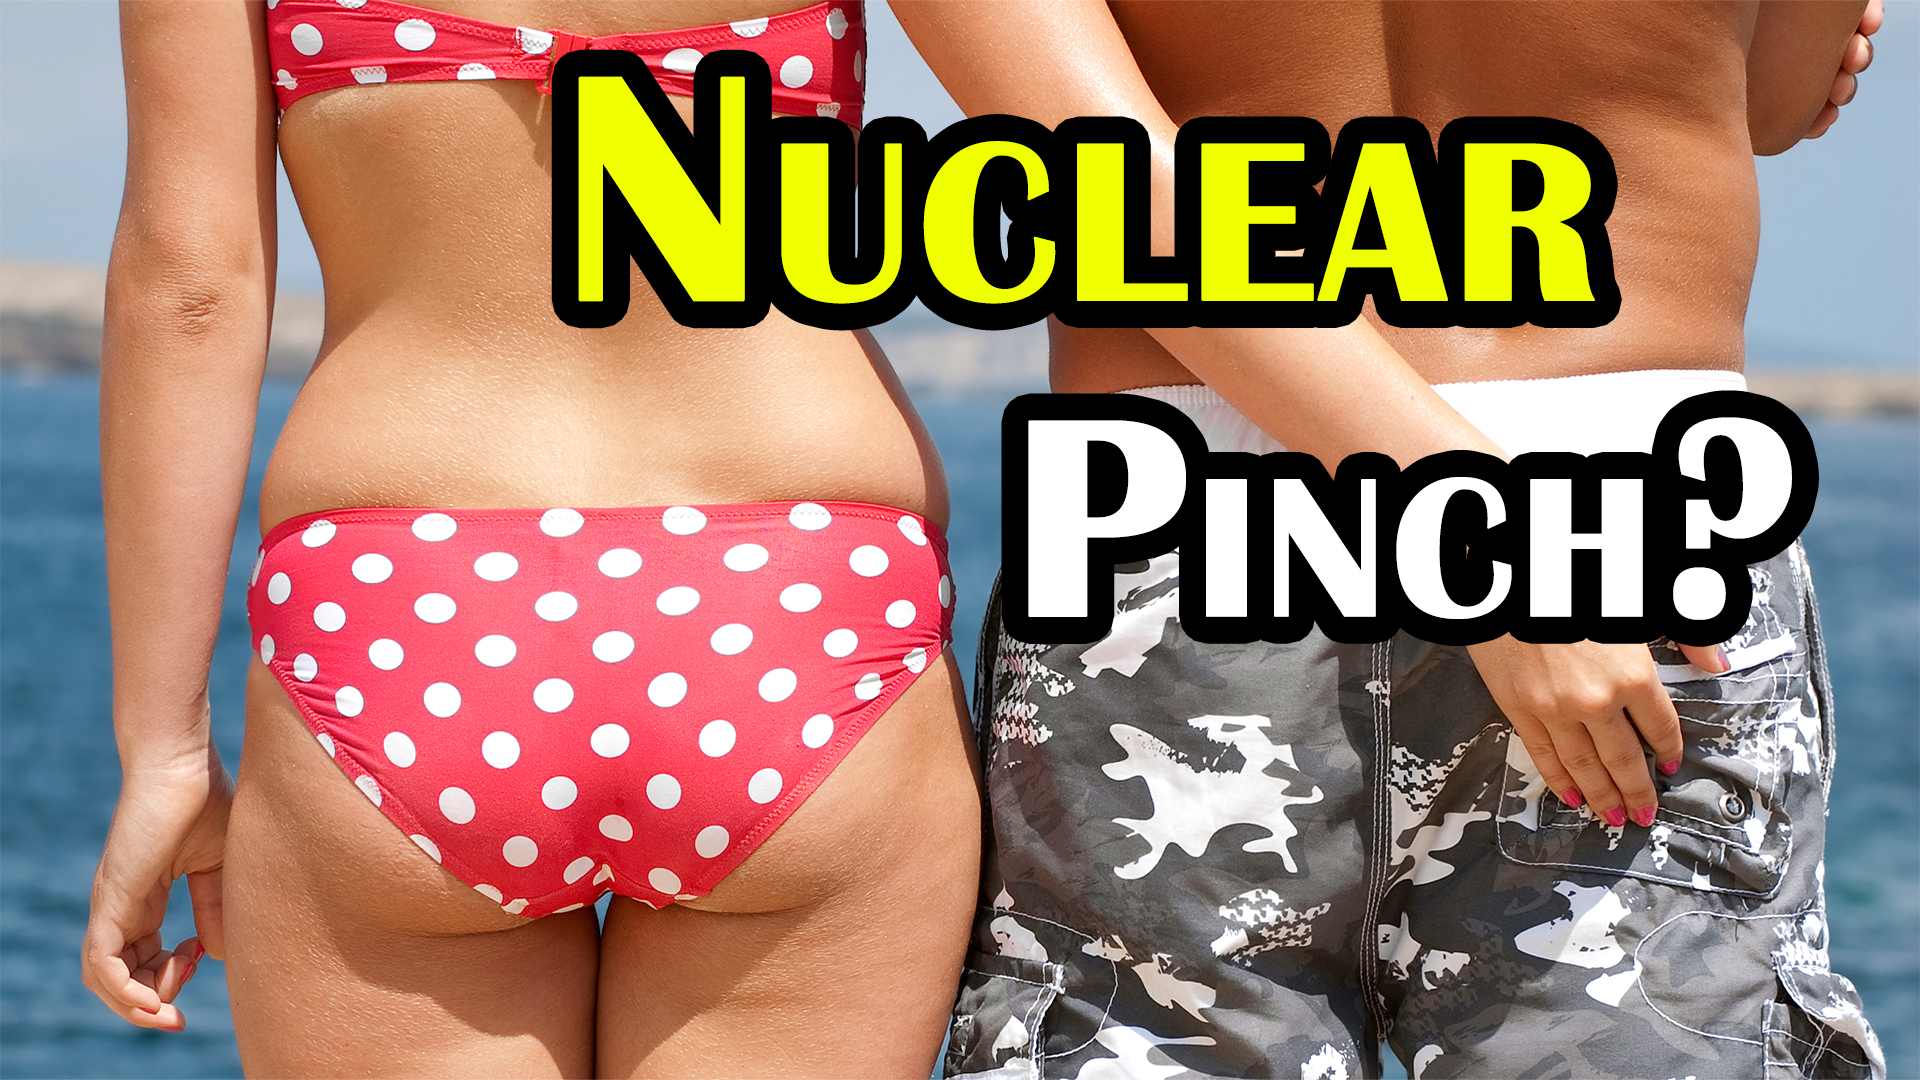 That Time Scientists Ran Experiments on Whether Pinching Someone in the Butt Could Cause a Nuclear Meltdown